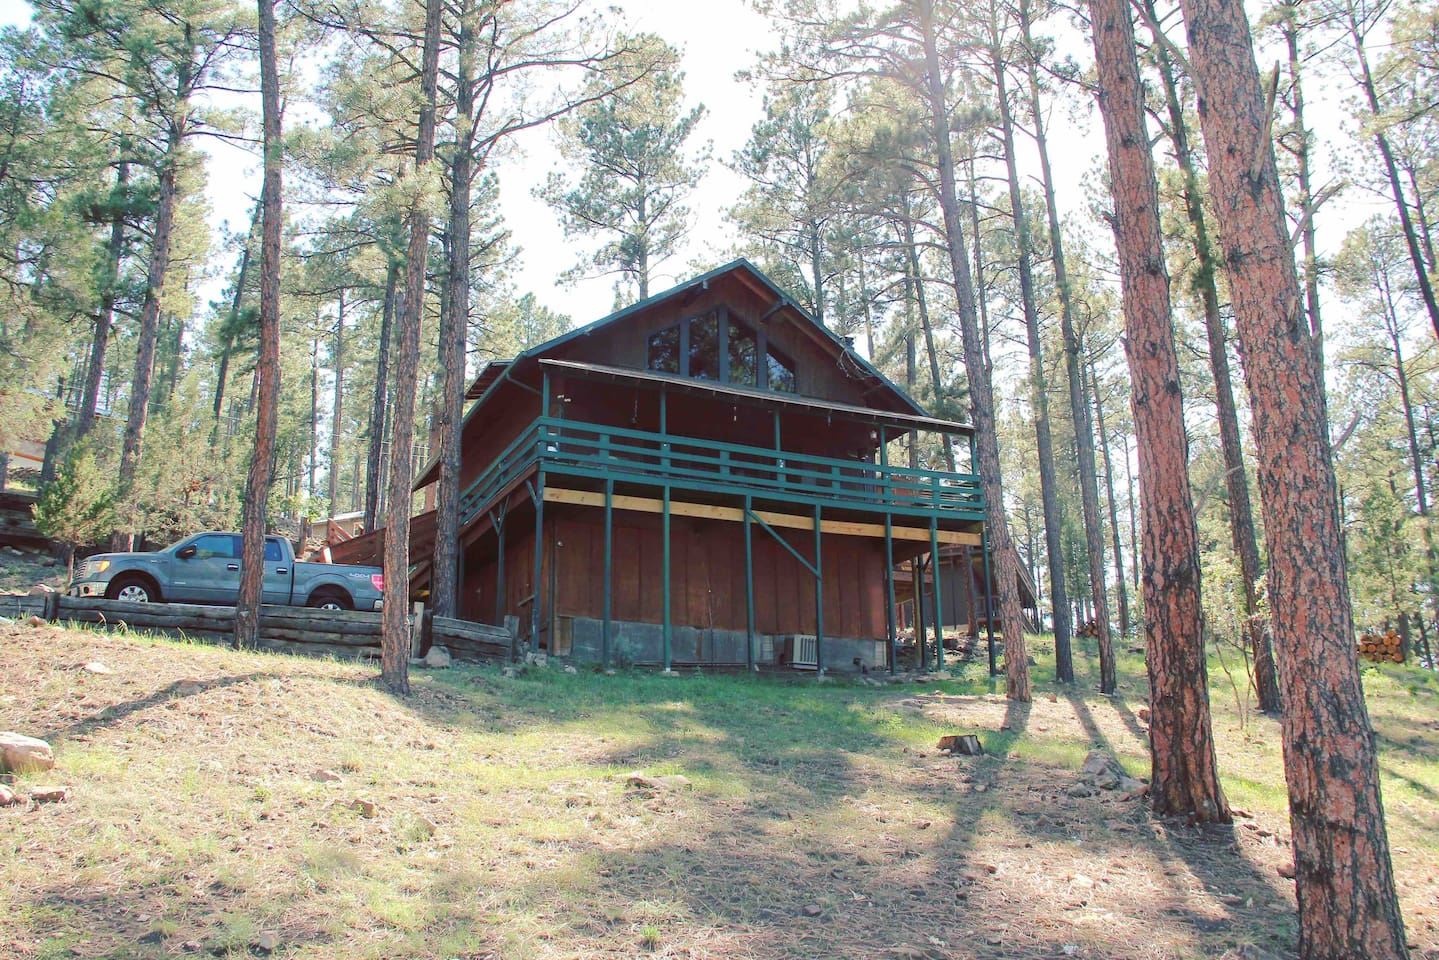 Look at that covered deck! It wraps around 3/4 of the cabin and often this is the area where you will see deer, elk, and other wildlife.